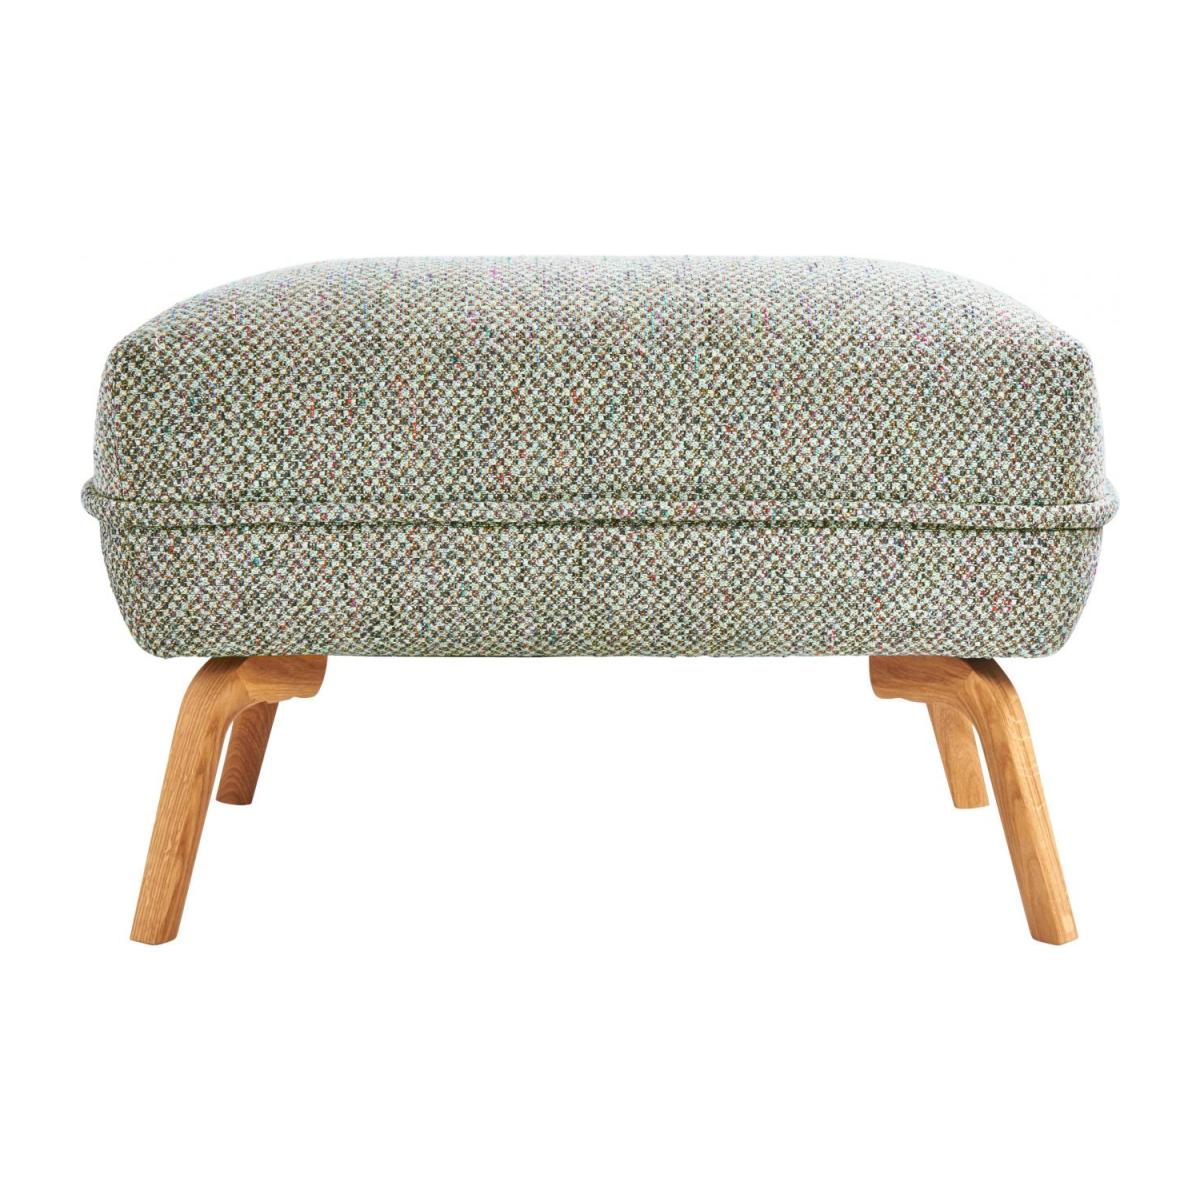 Footstool in Bellagio fabric, organic green and oak legs n°3